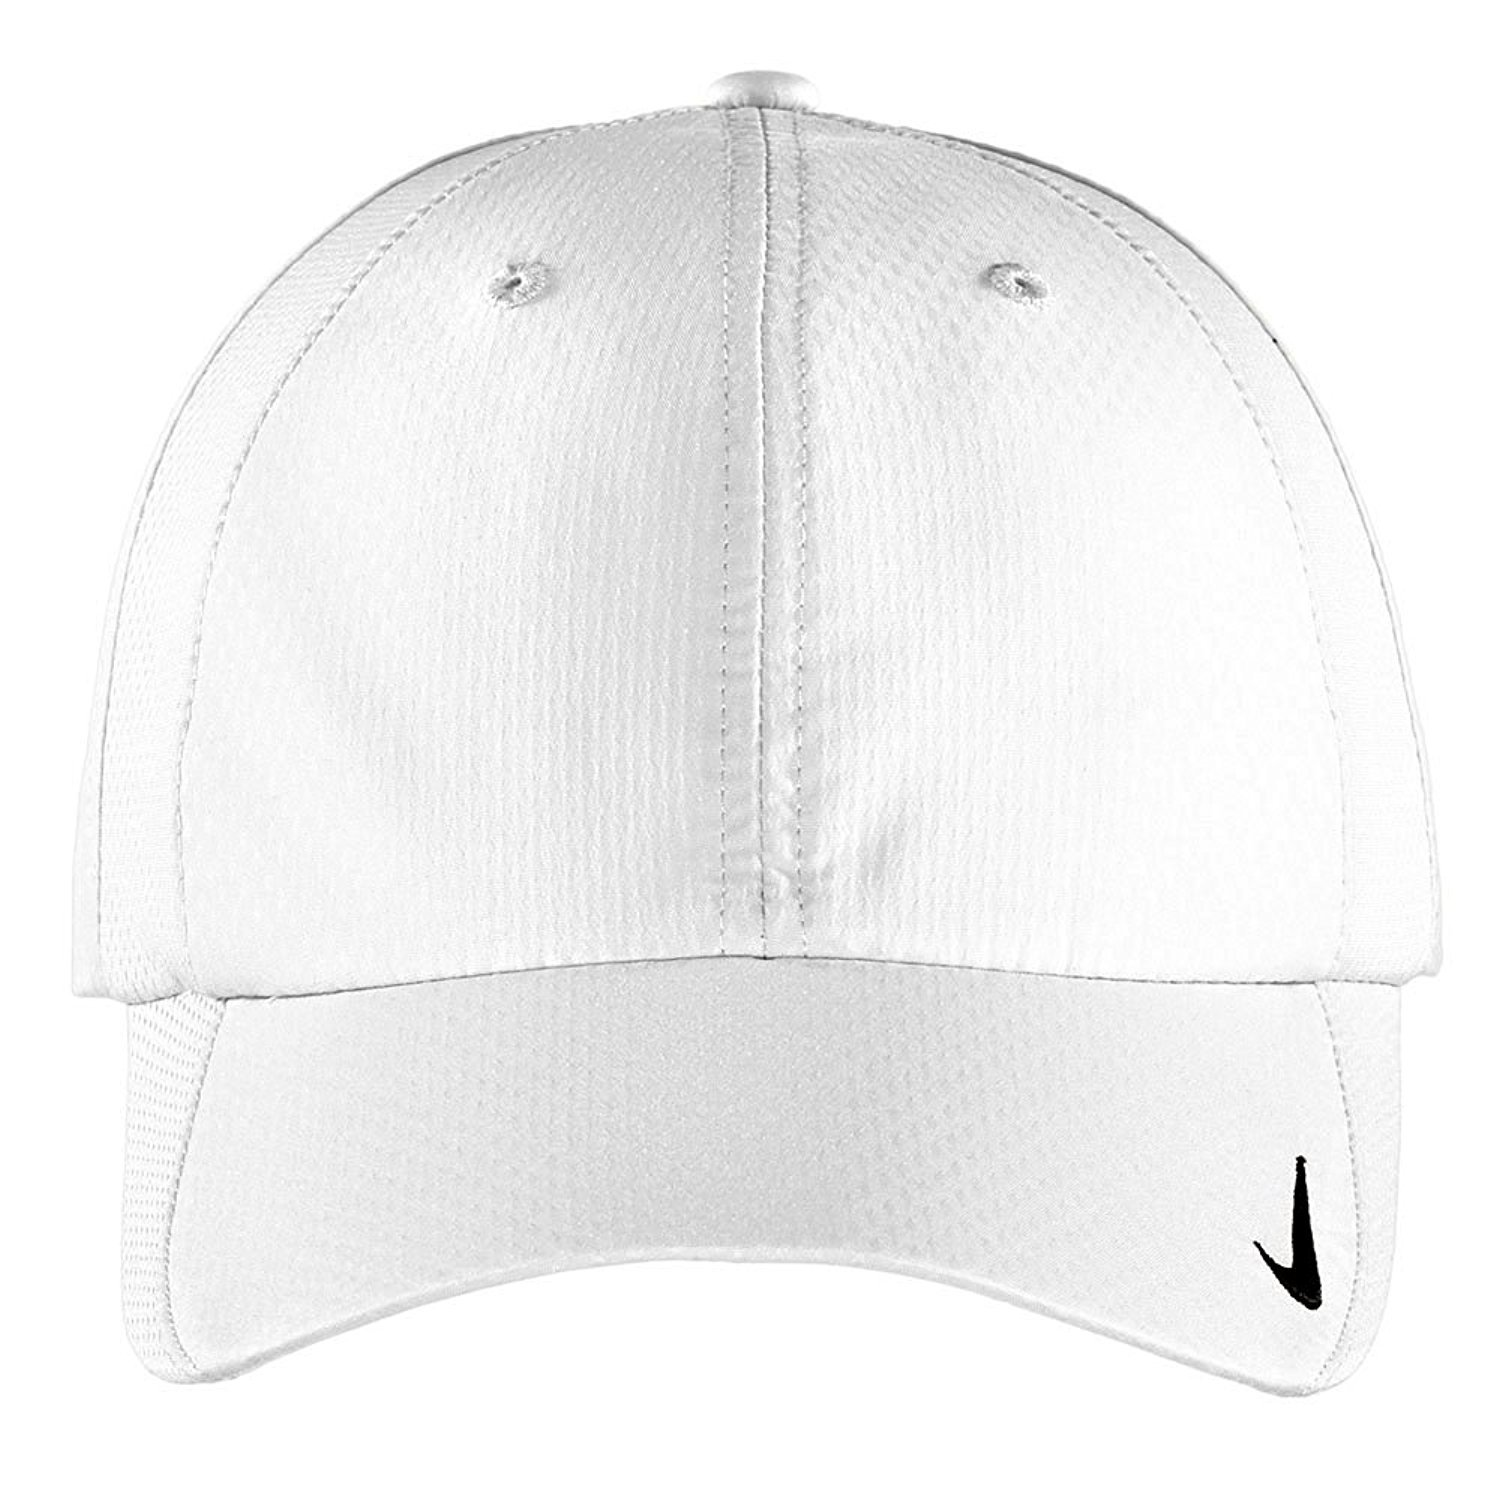 Nike - Gorra ajustable Authentic Sphere de secado rápido y perfil ...